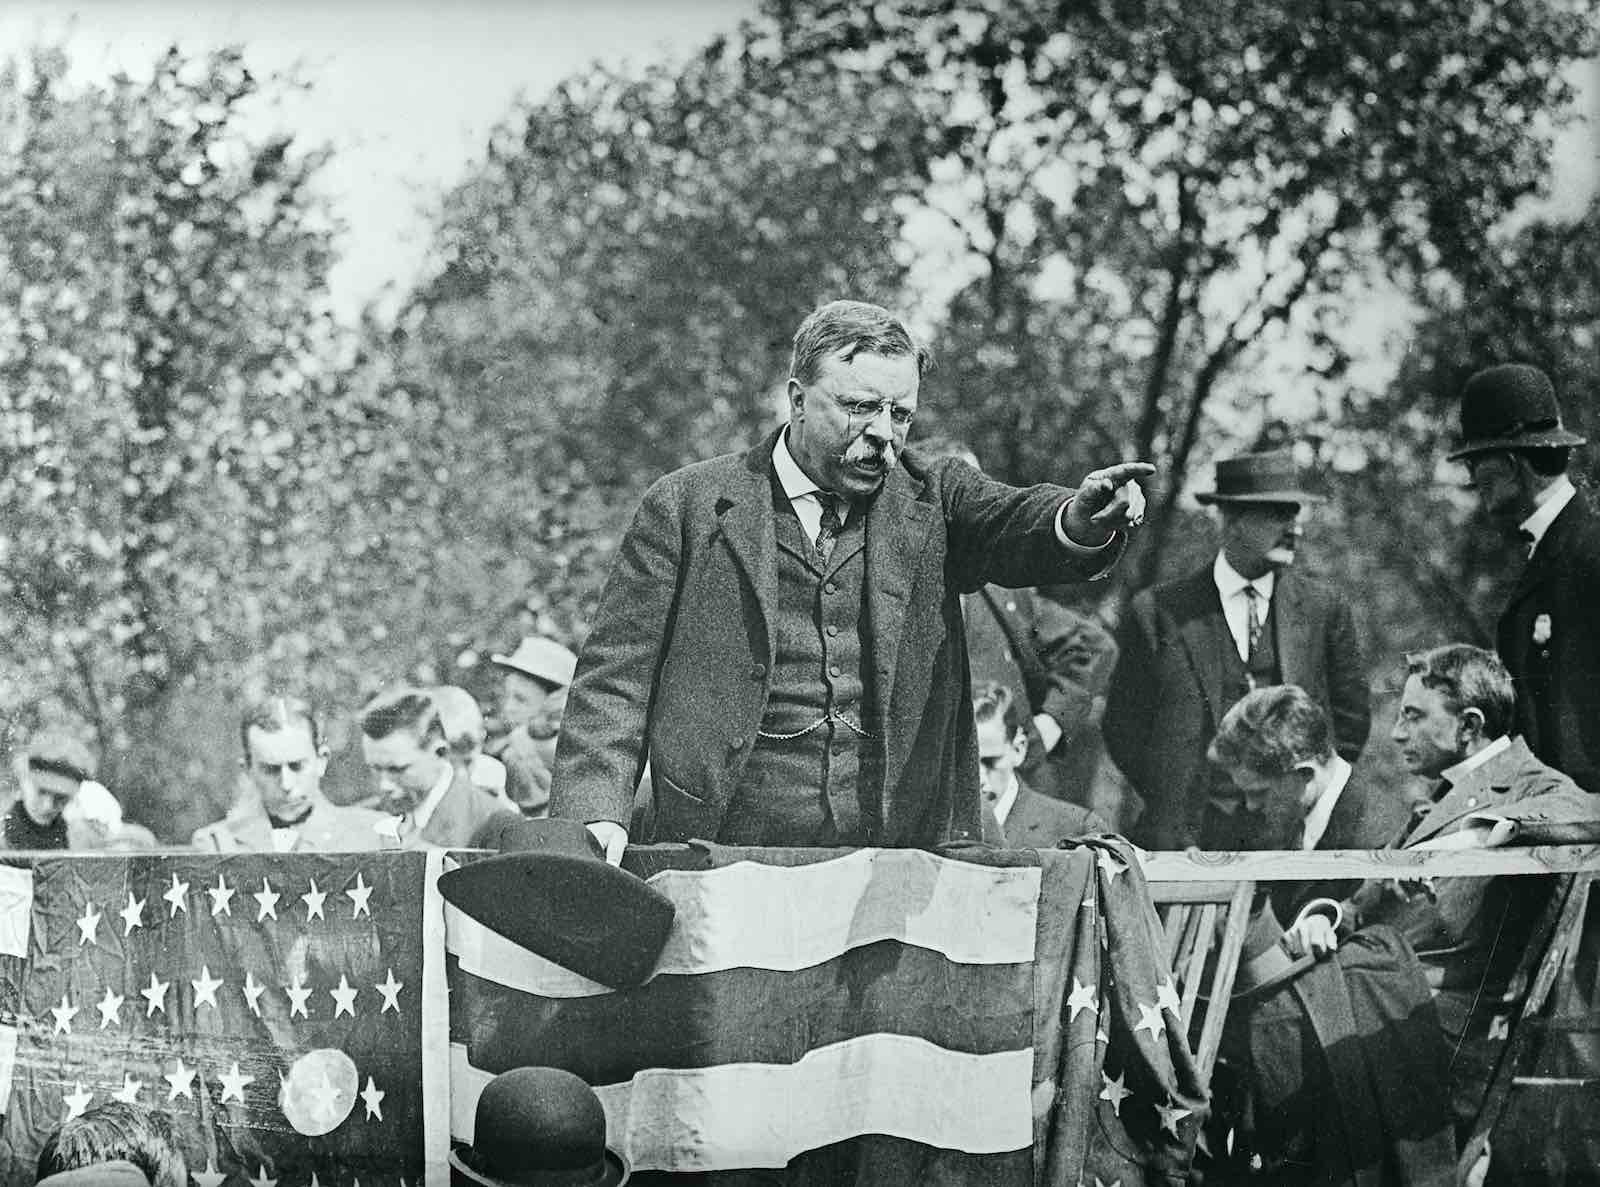 Theodore Roosevelt during a campaign rally speech circa 1900 (Bettmann via Getty Images)